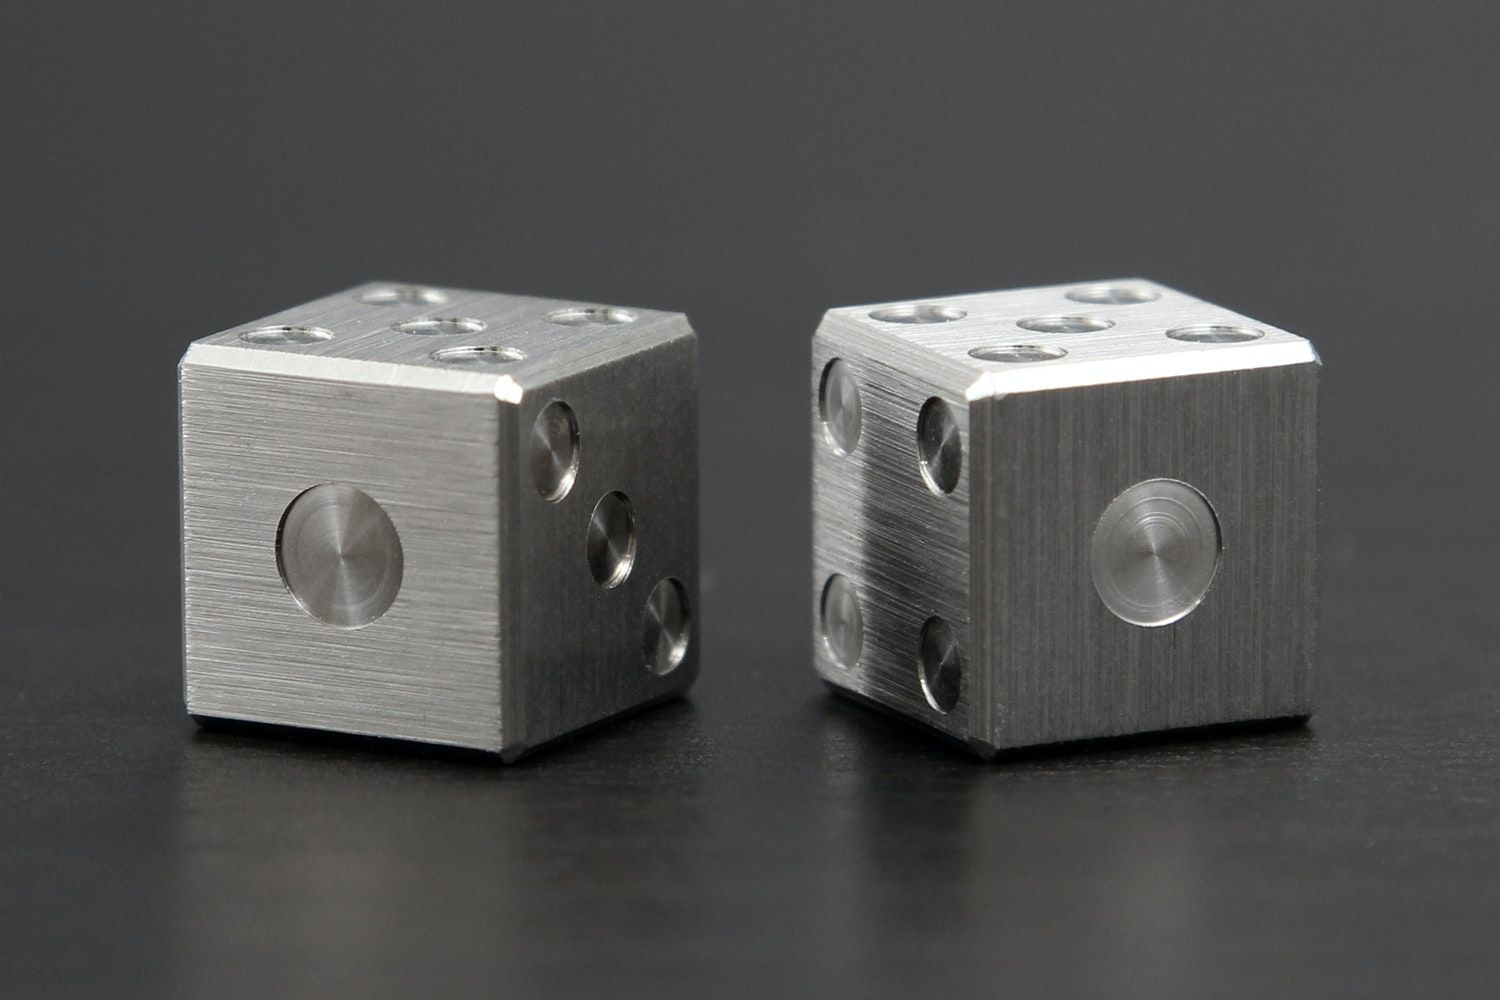 Amber Rix 6-Sided Titanium Die (2-Pack)